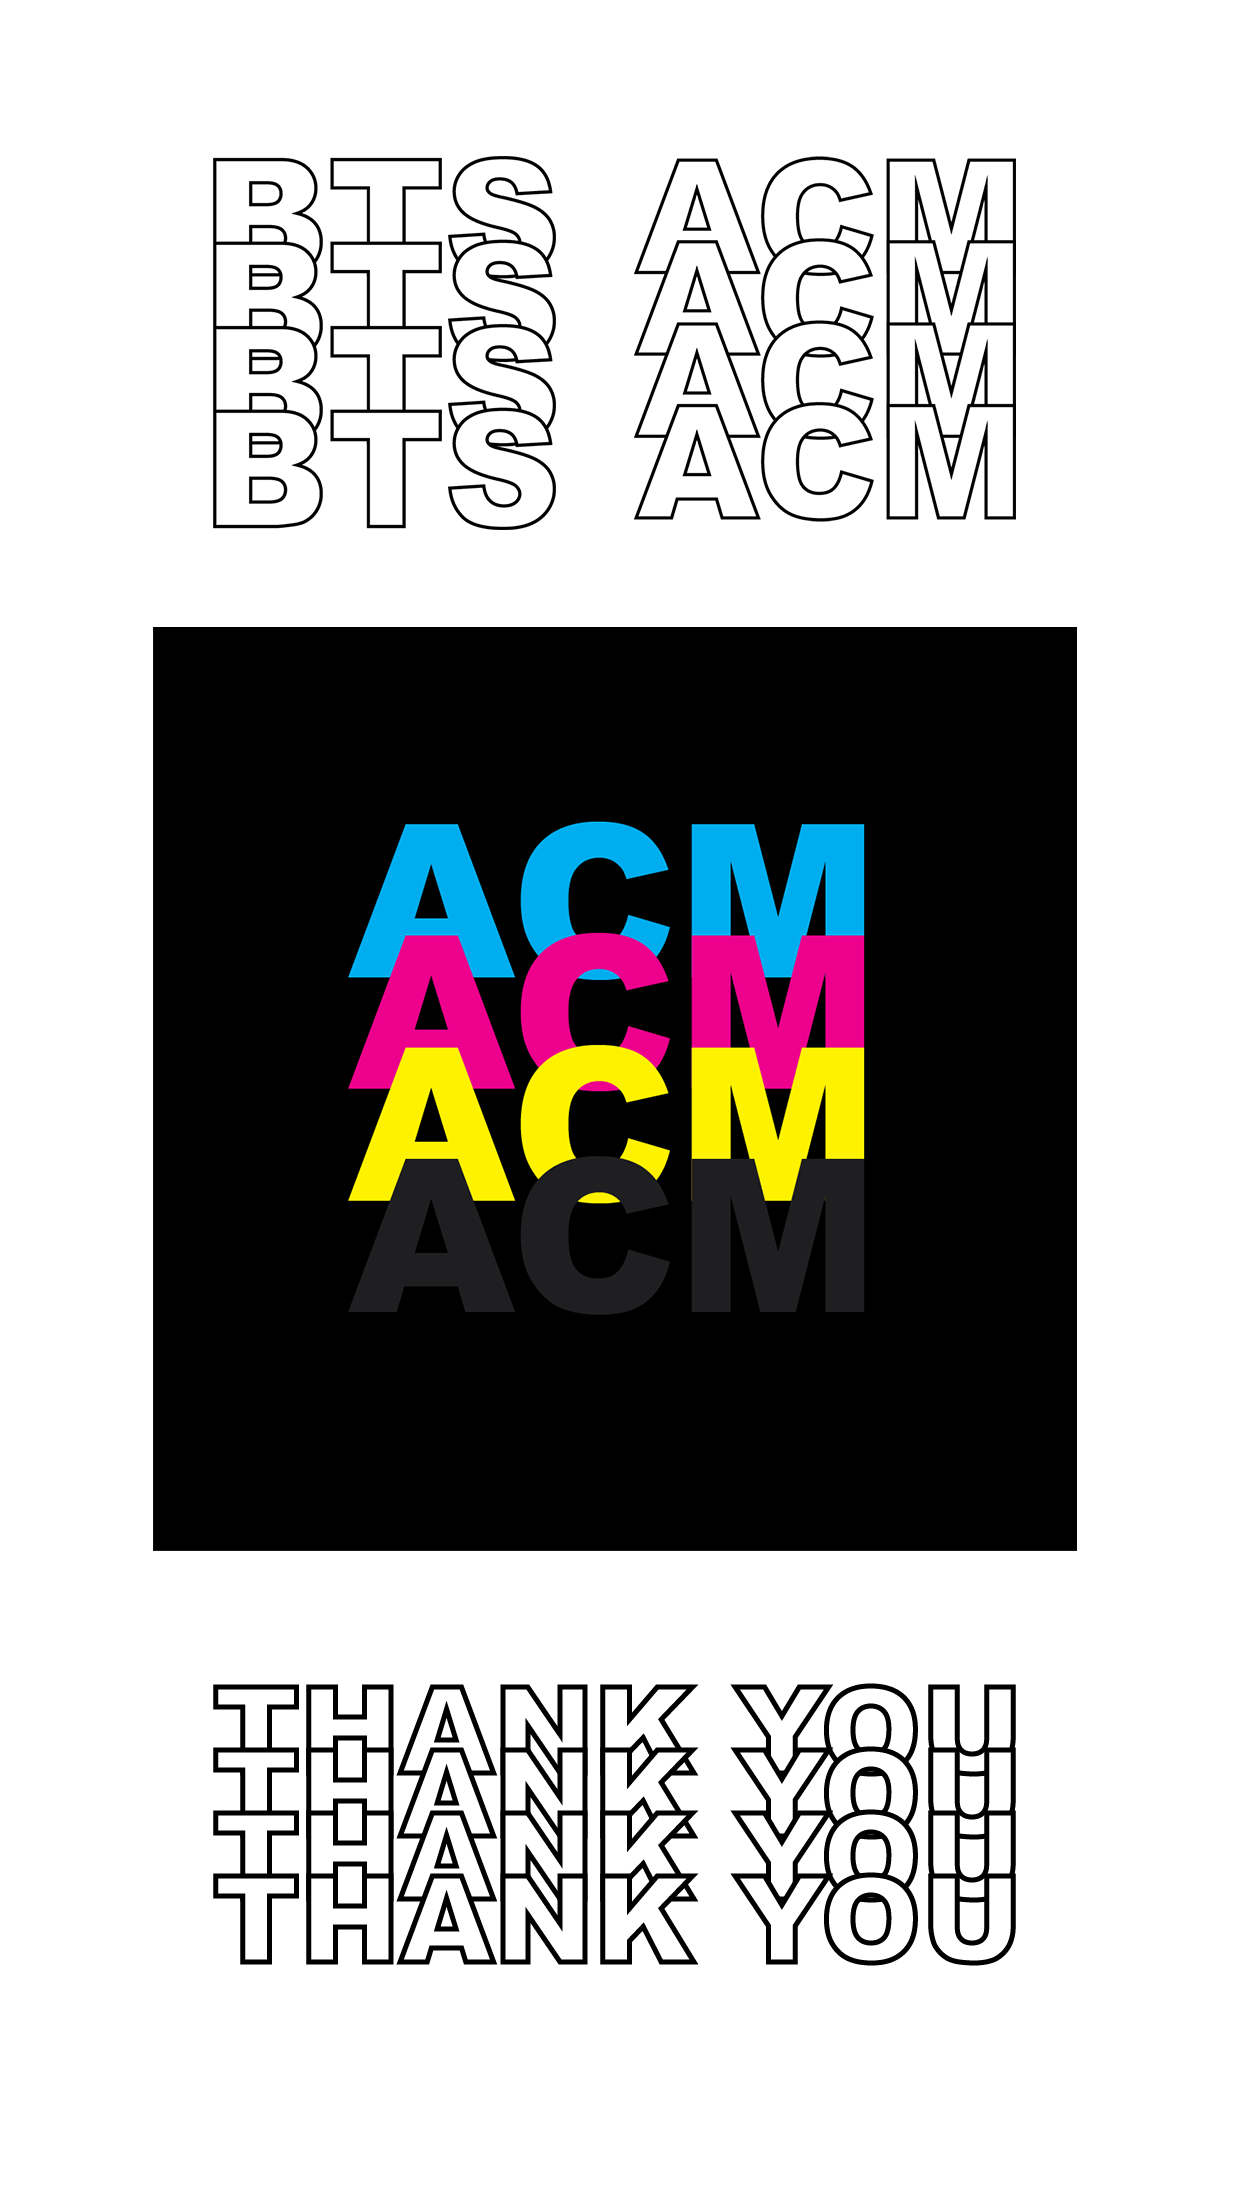 ACM logo and ig highlights - Created a new overlapping logo for Art Concept Magazine in both their colors (CMYK) and a minimal black and white design. Also created instagram story highlights in the same minimal B&W design.